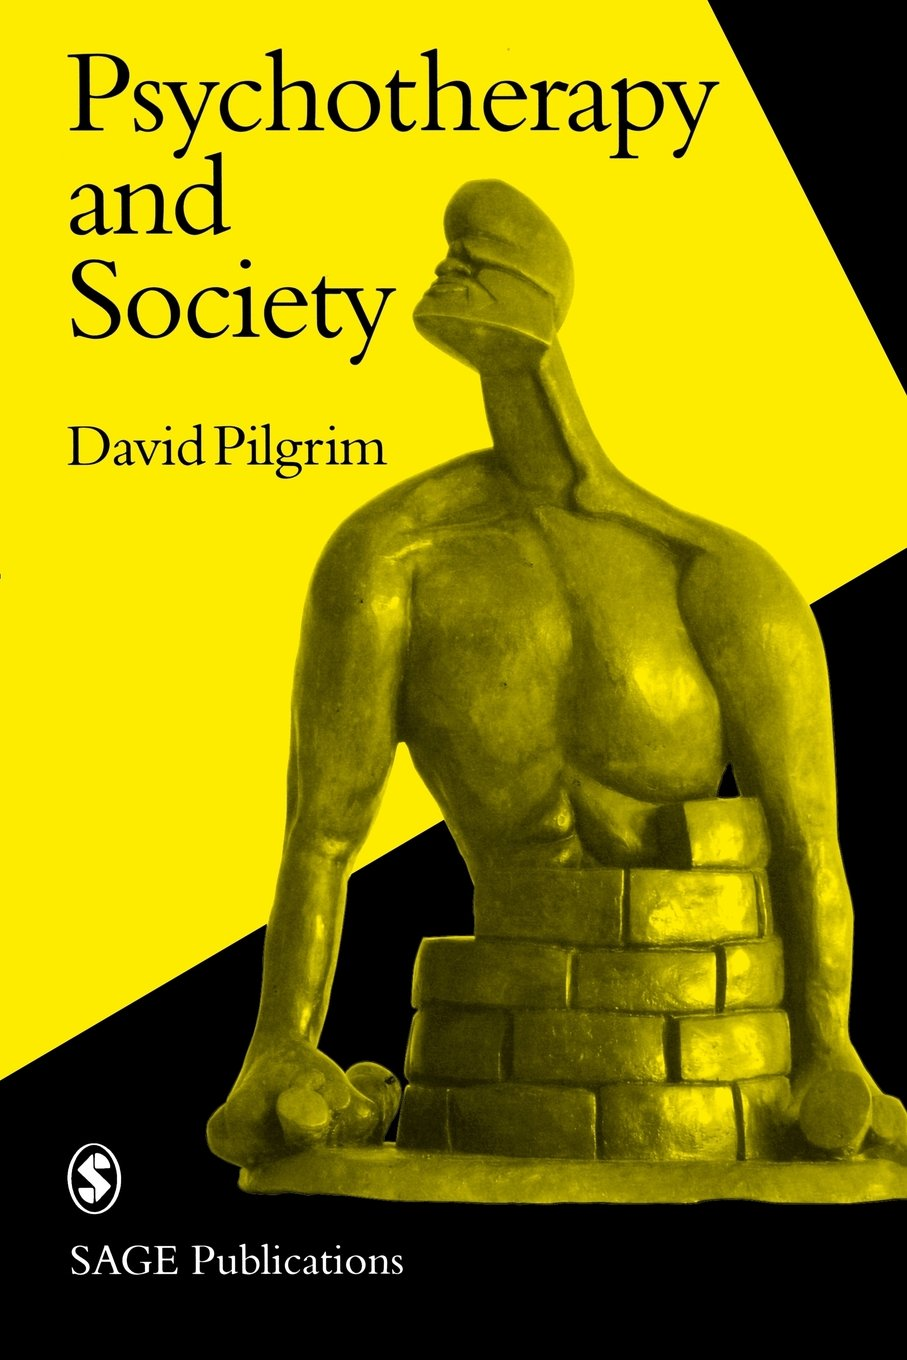 Pilgrim, David. Psychotherapy and Society